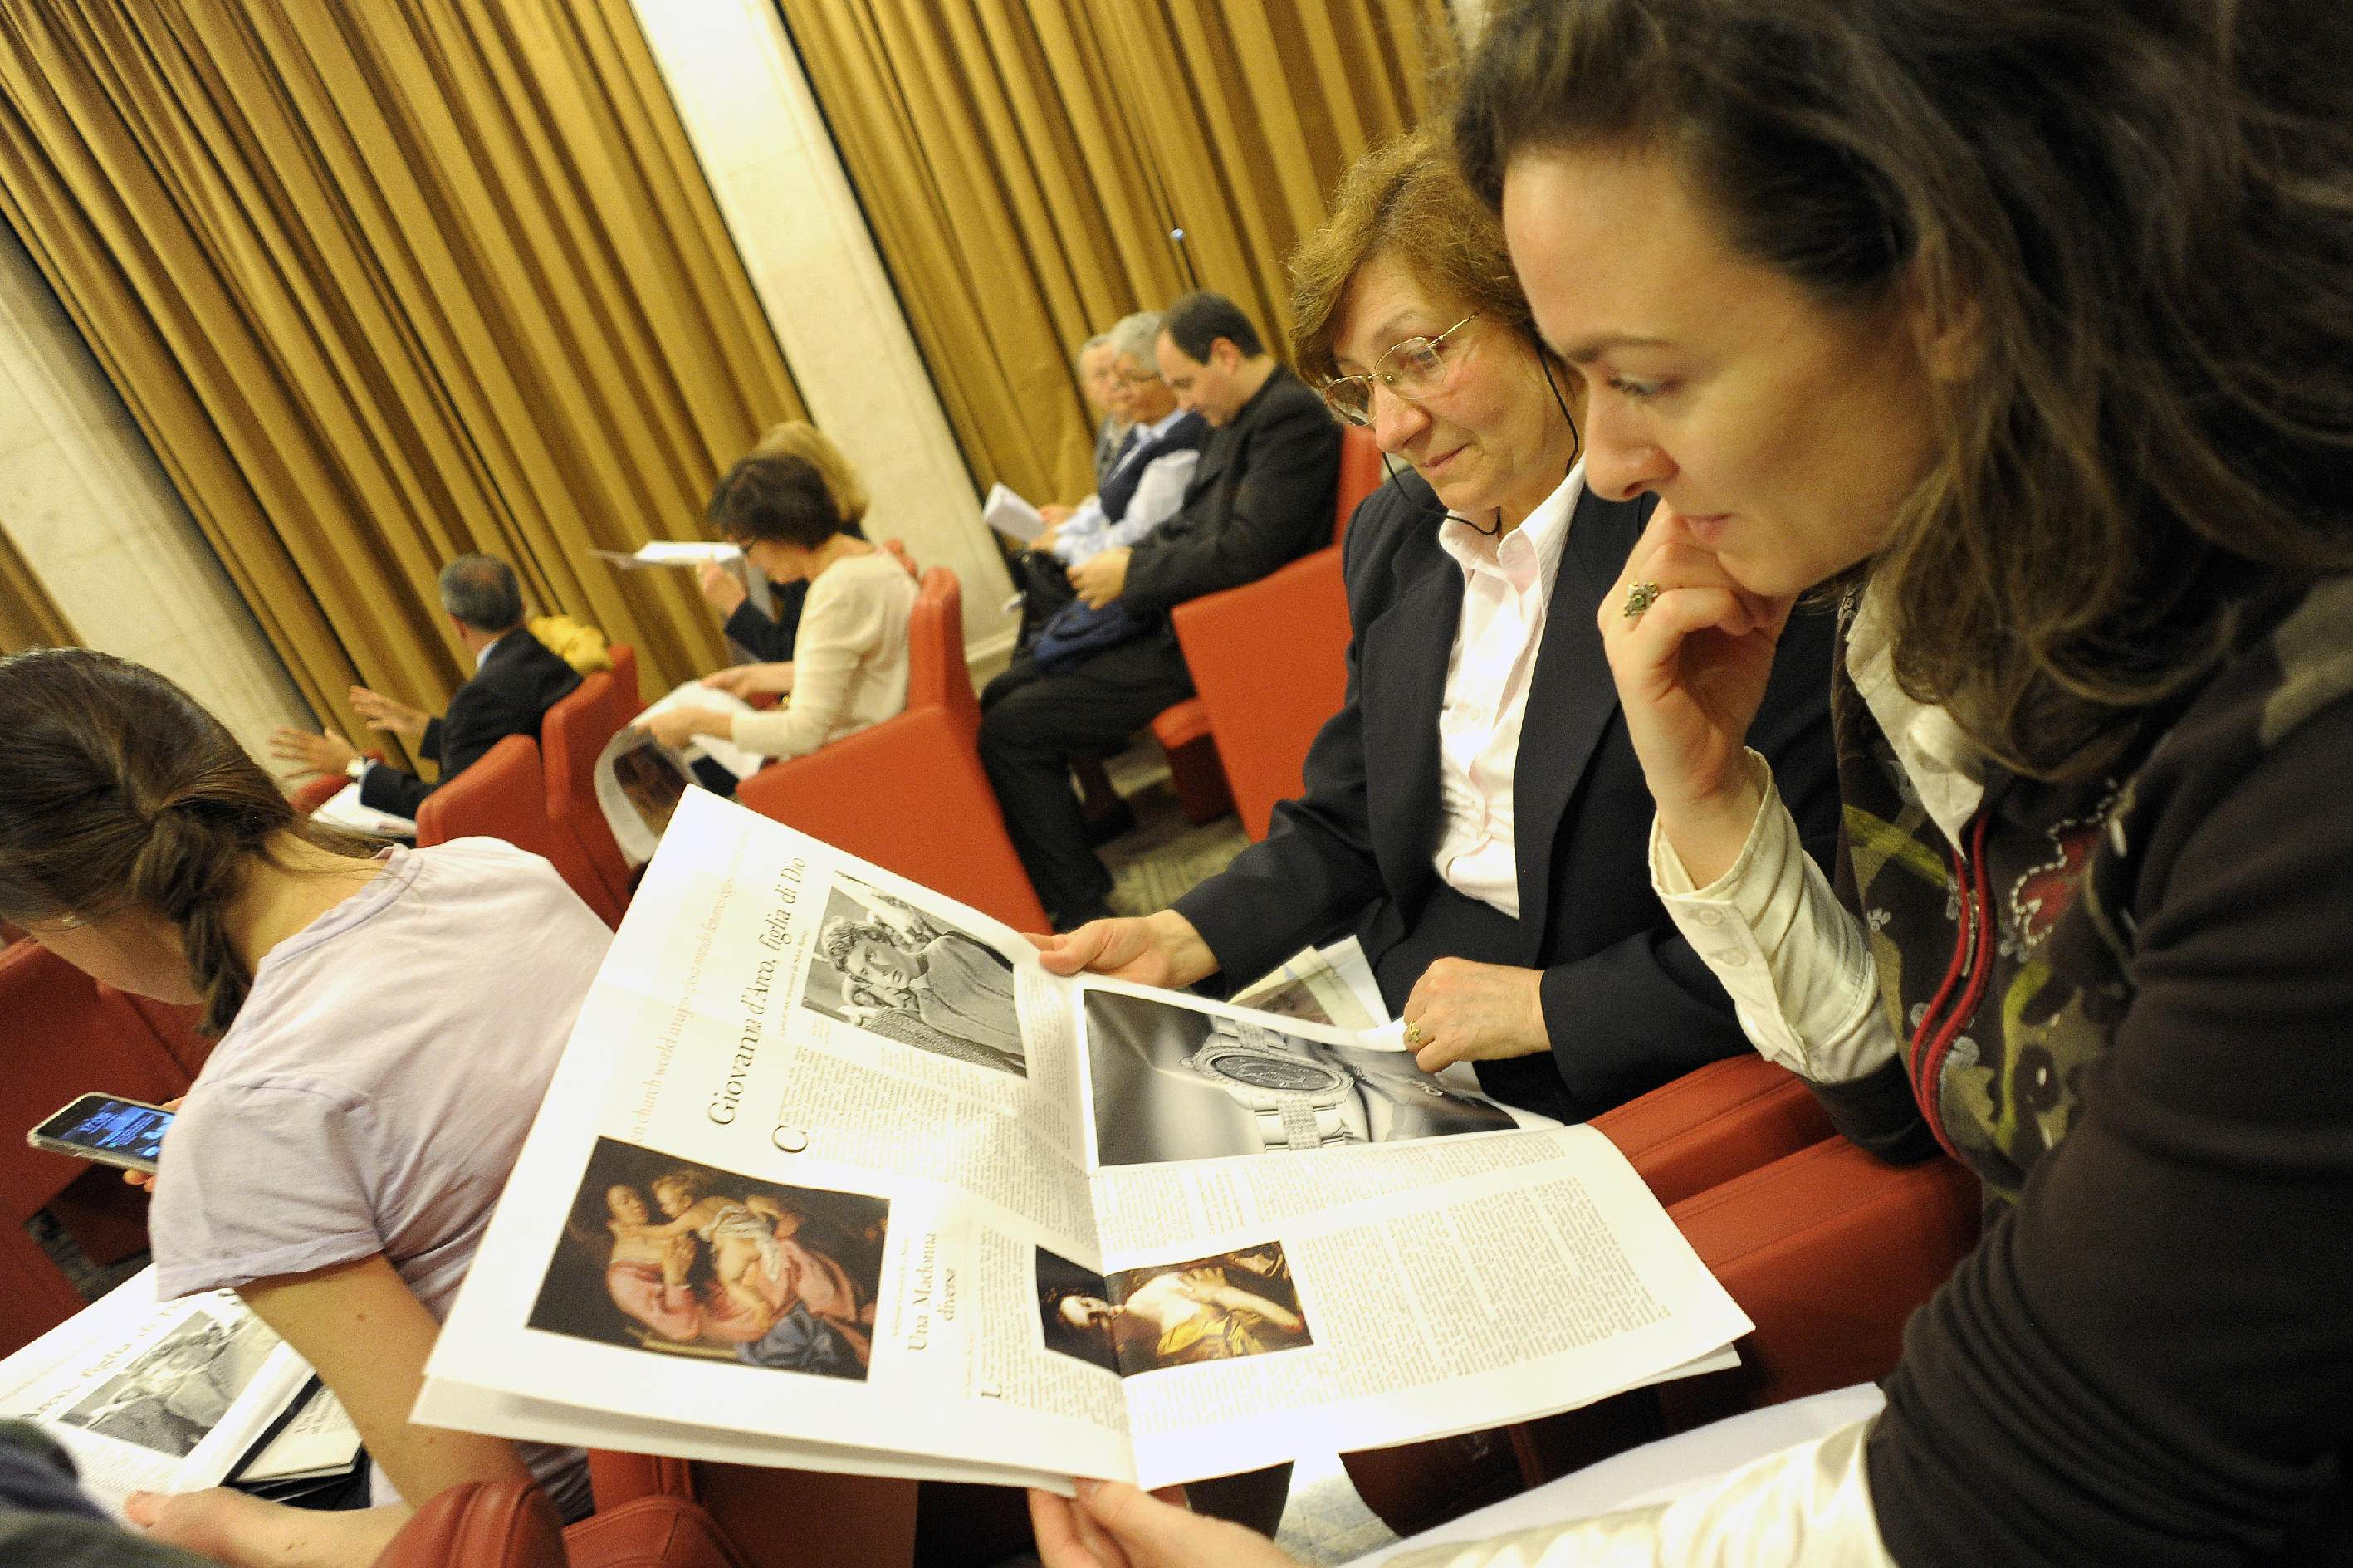 Vatican editor denies interfering in women's mag